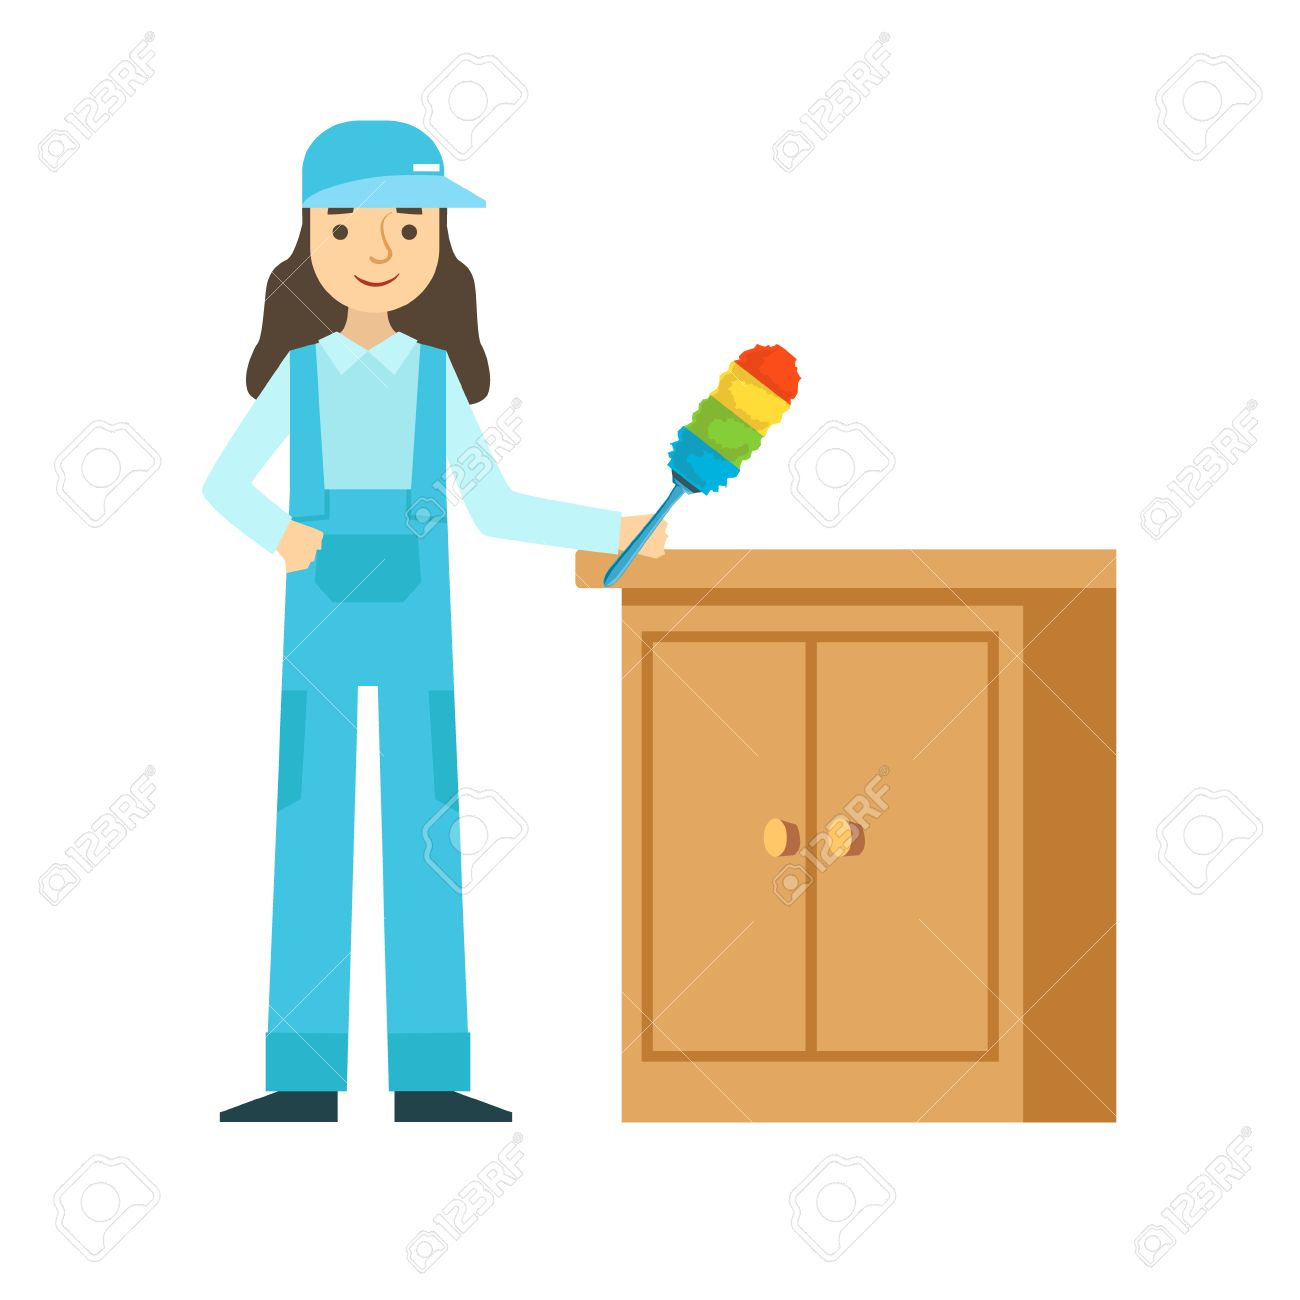 dusting furniture. woman dusting the furniture cleaning service professional cleaner in uniform household s